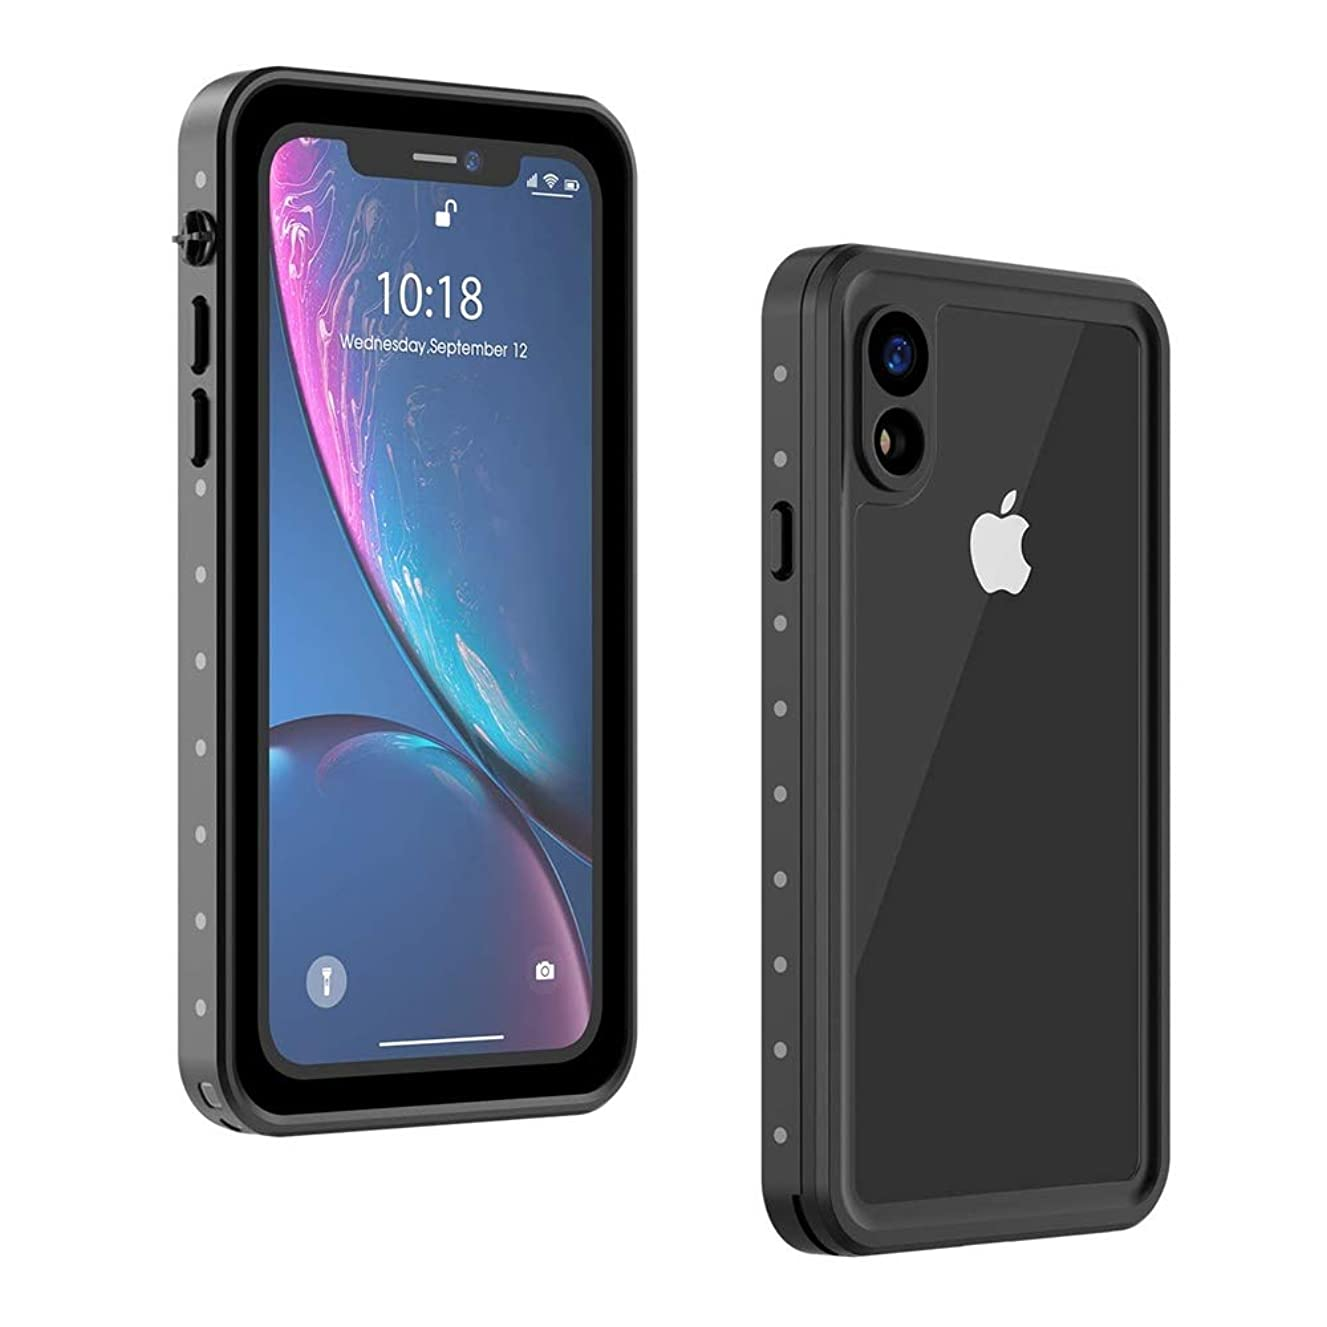 Wildtek DOT Series iPhone XR Waterproof Case | Underwater Snowproof Dirtproof Shockproof with Touch ID | Fully Sealed Cover Waterproof Phone Case | 4.7 Inch Black